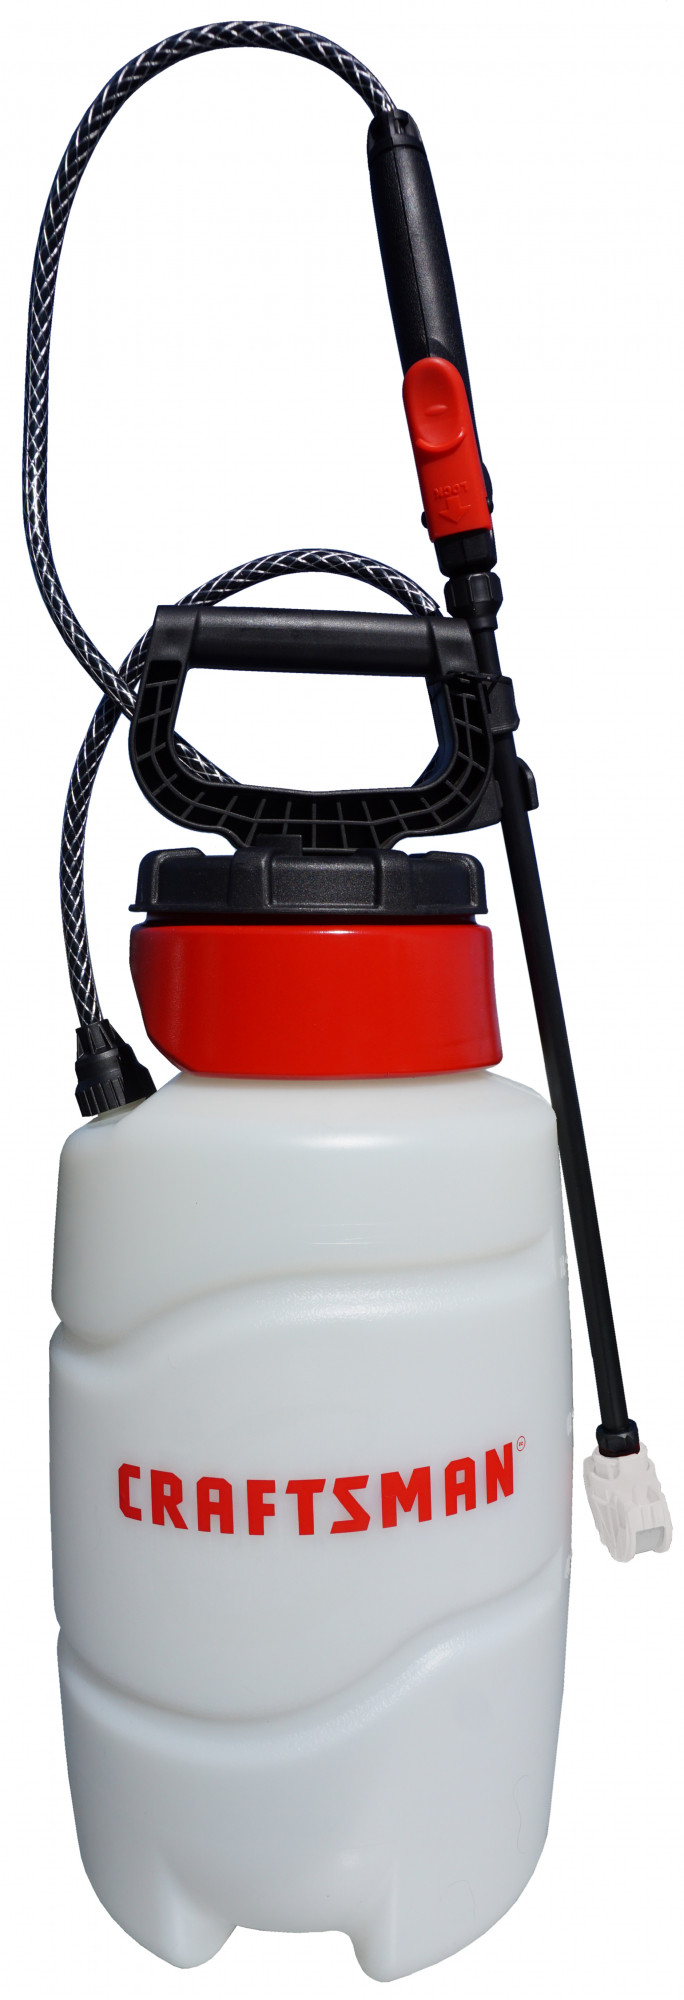 Craftsman Multi Purpose 2 Gal Cleaning Sprayer